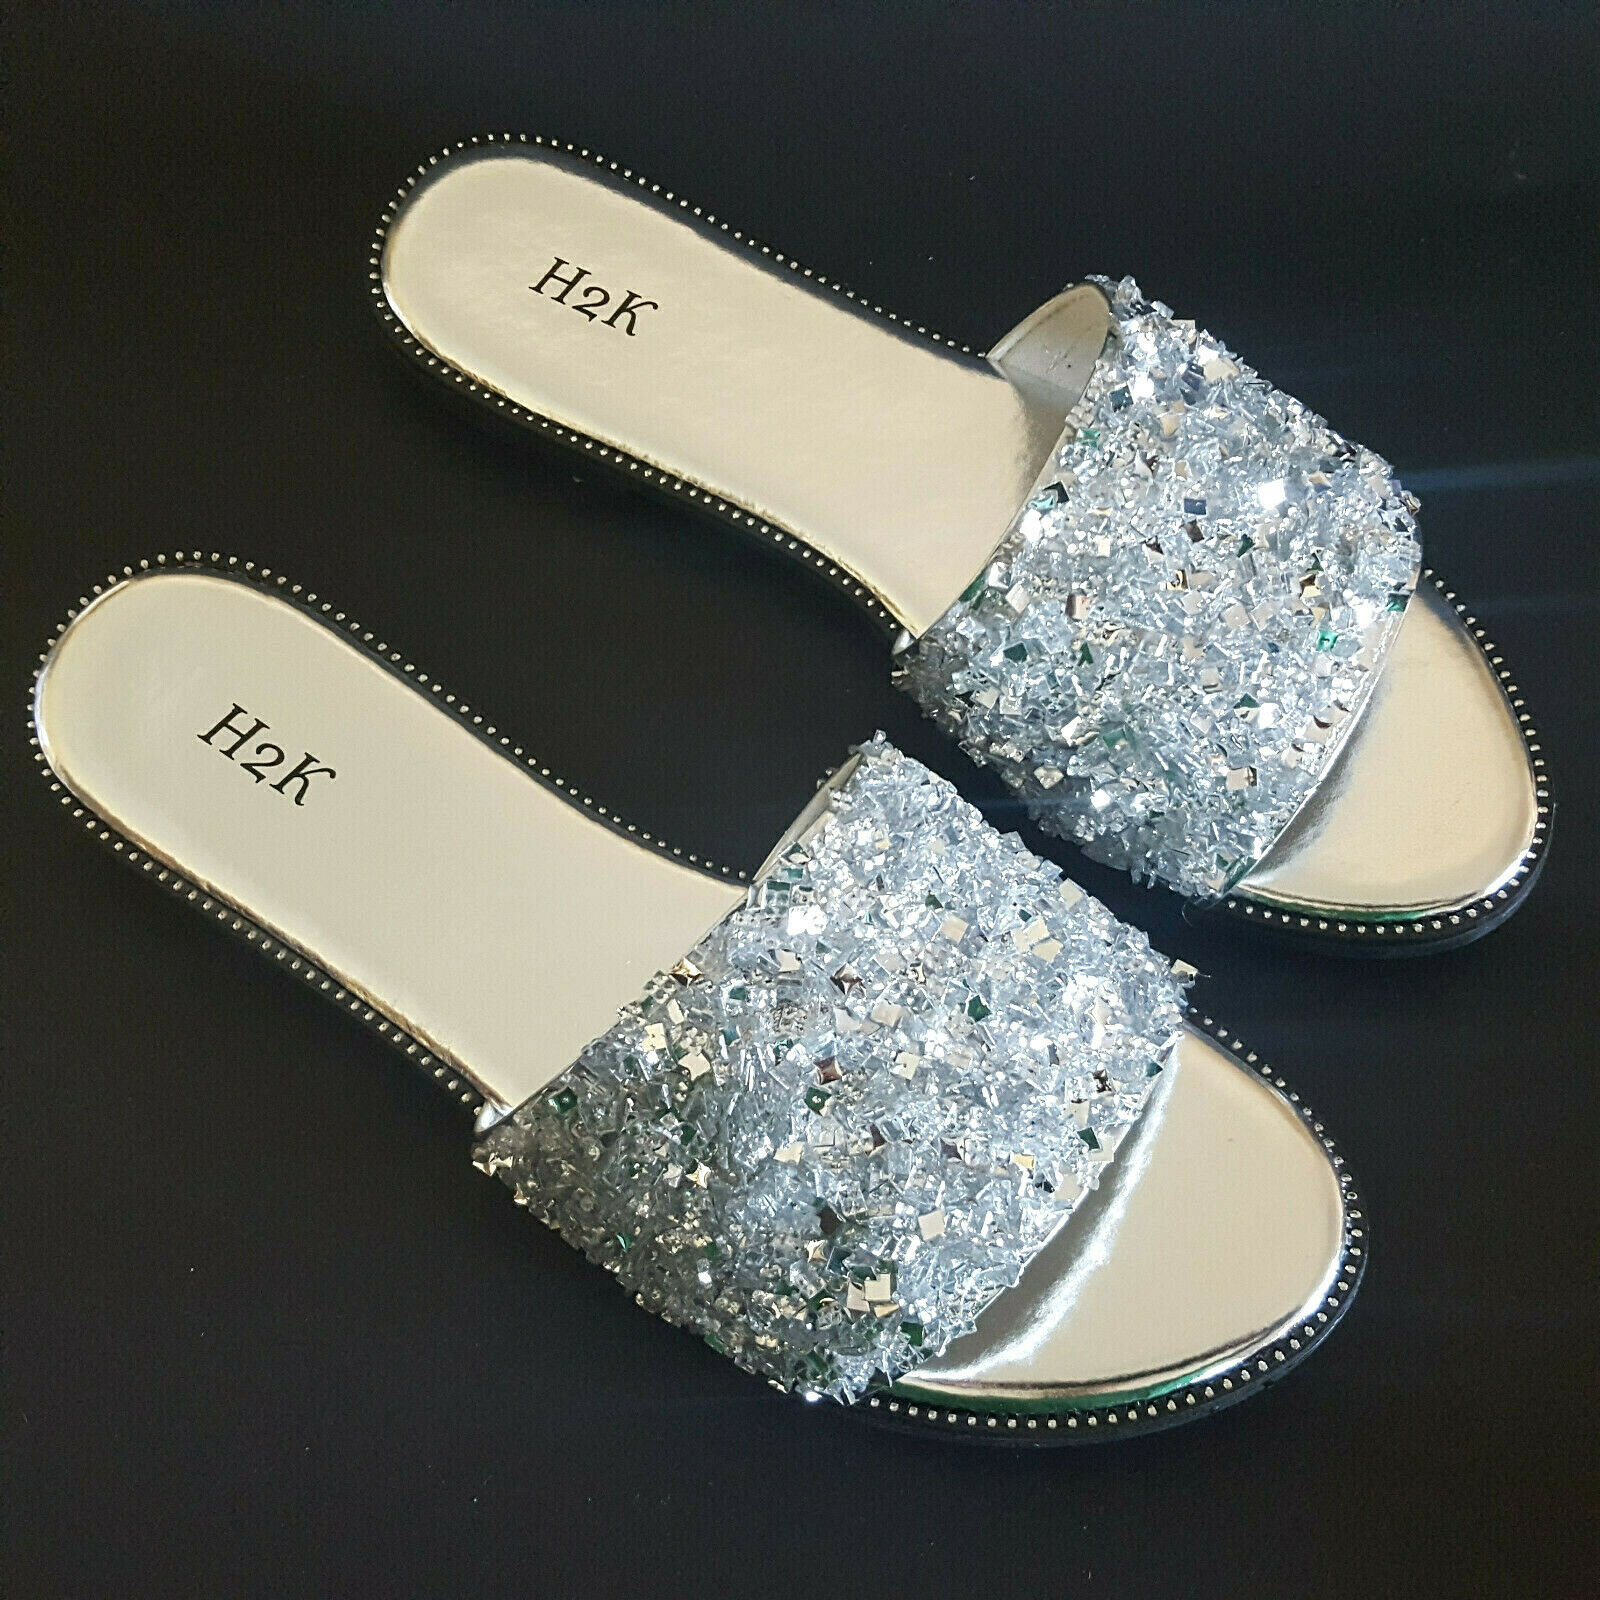 Primary image for H2K Dream SILVER Glitter Bling Sparkle Fancy Slides Sandals Low Flats New In Box